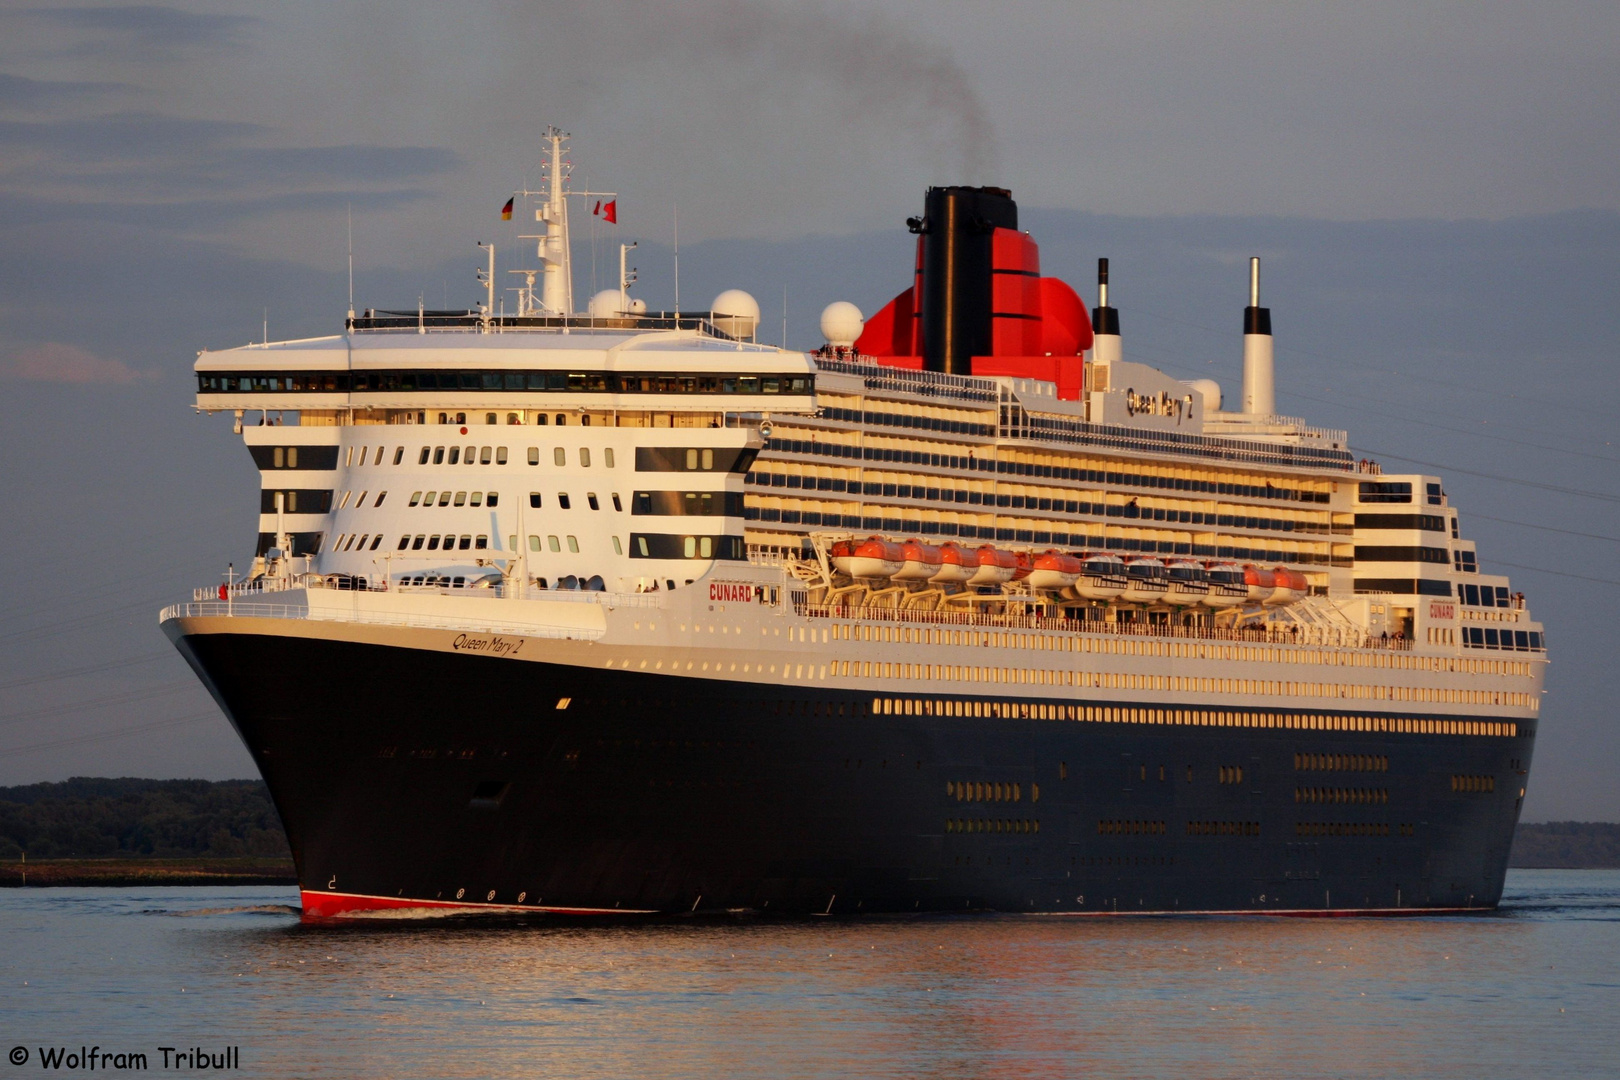 Queen Mary 2 (IMO 9241061)